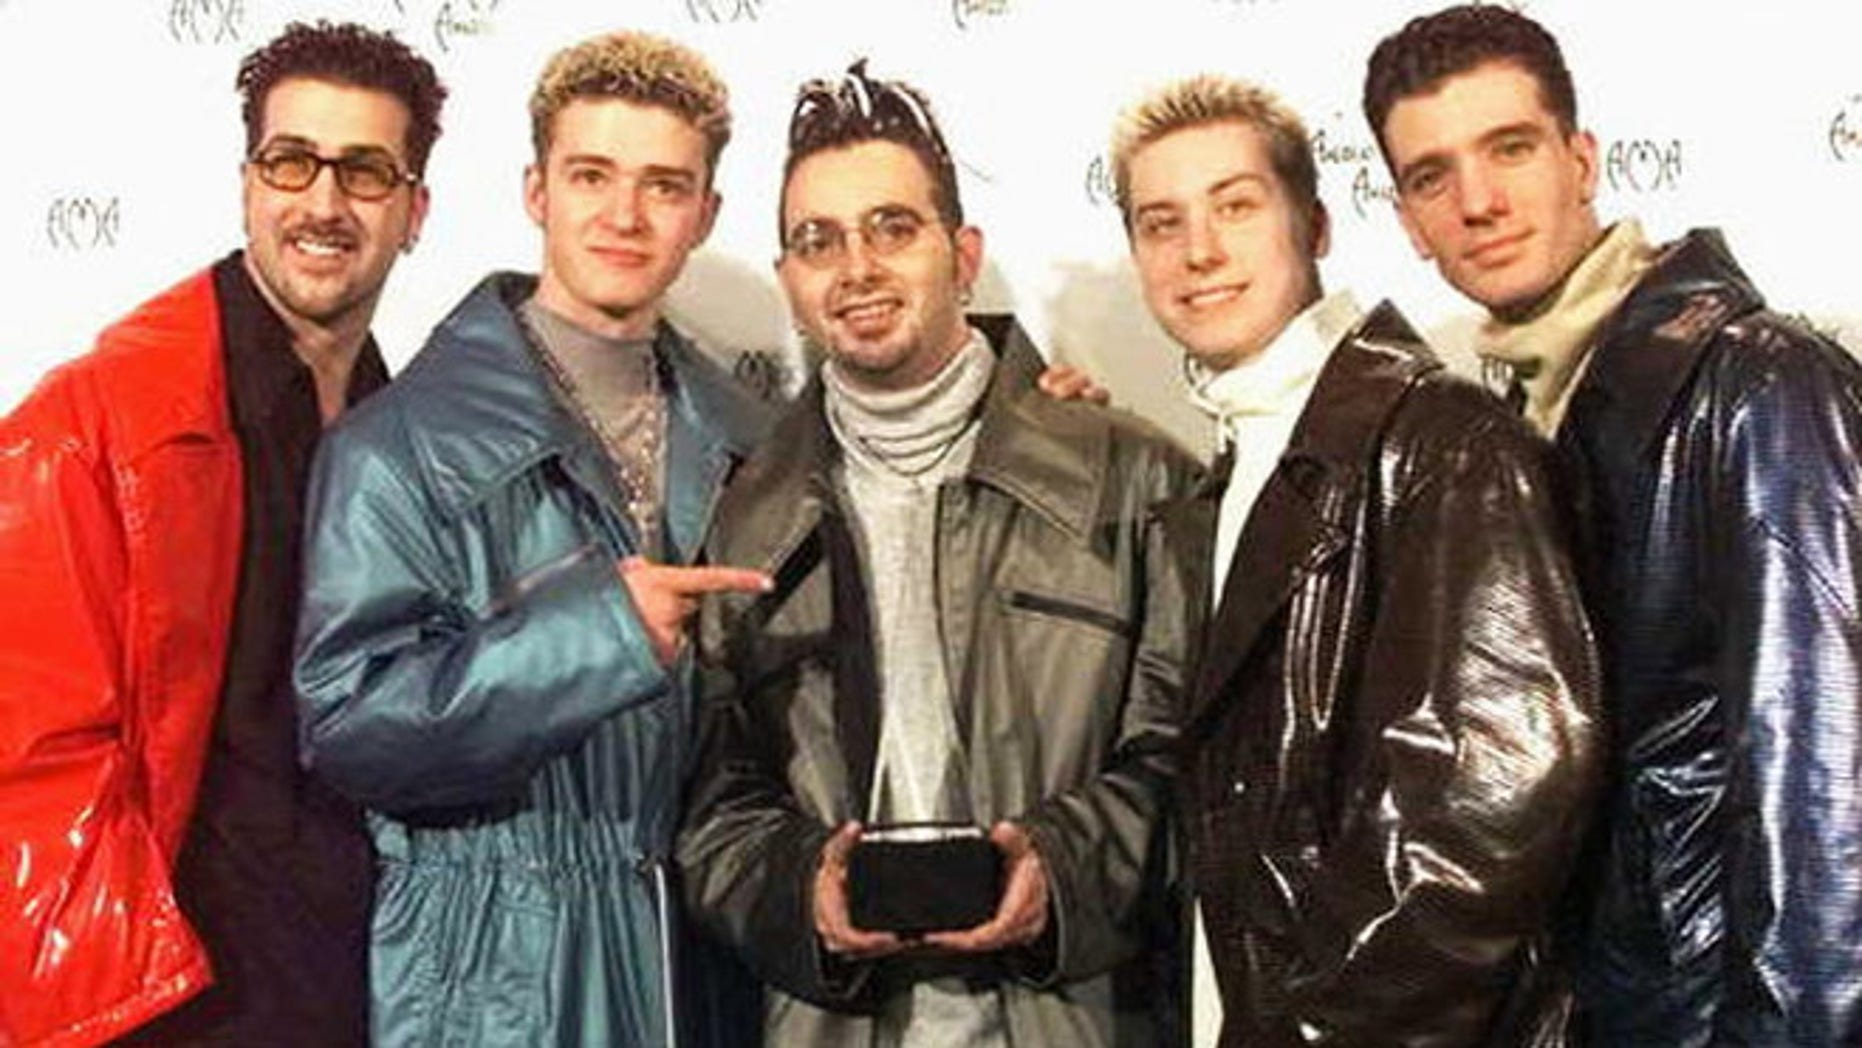 Perhaps Timberlake did not want to be reminded of how he once dressed. Understandable.